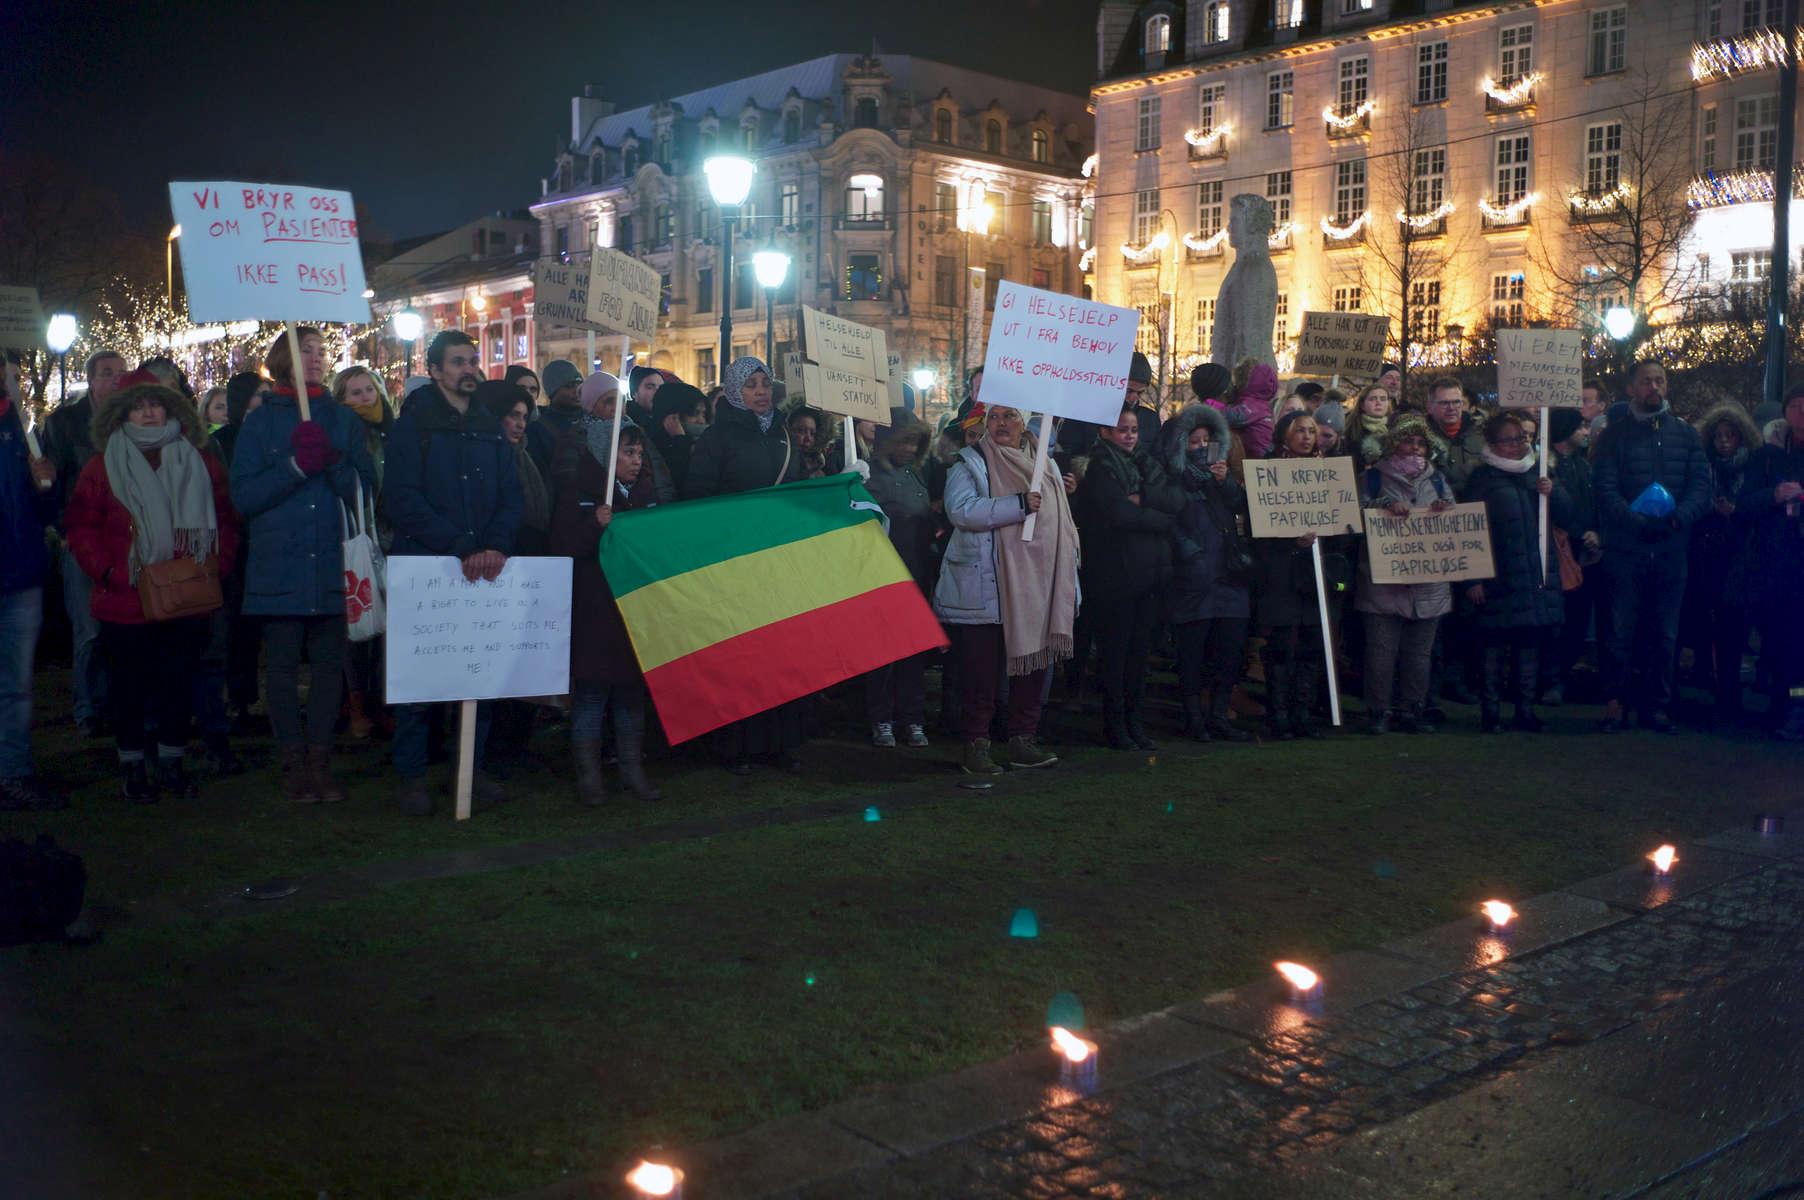 A crowd of protesters, holding signs, stand outside the Parliament building at night demanding justice for asylum seekers.